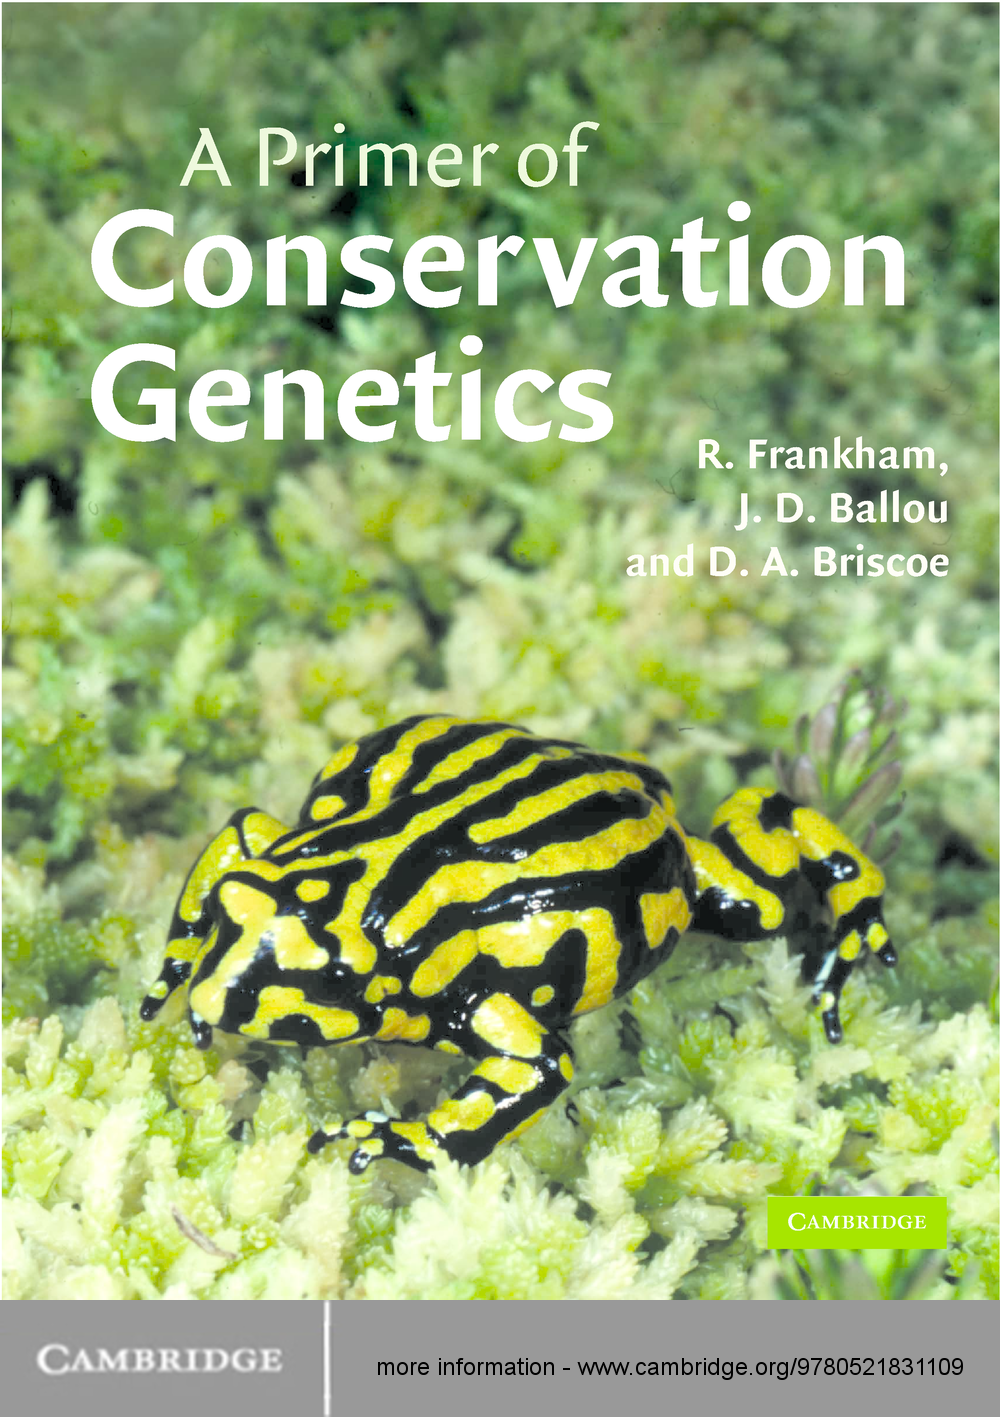 A Primer of Conservation Genetics